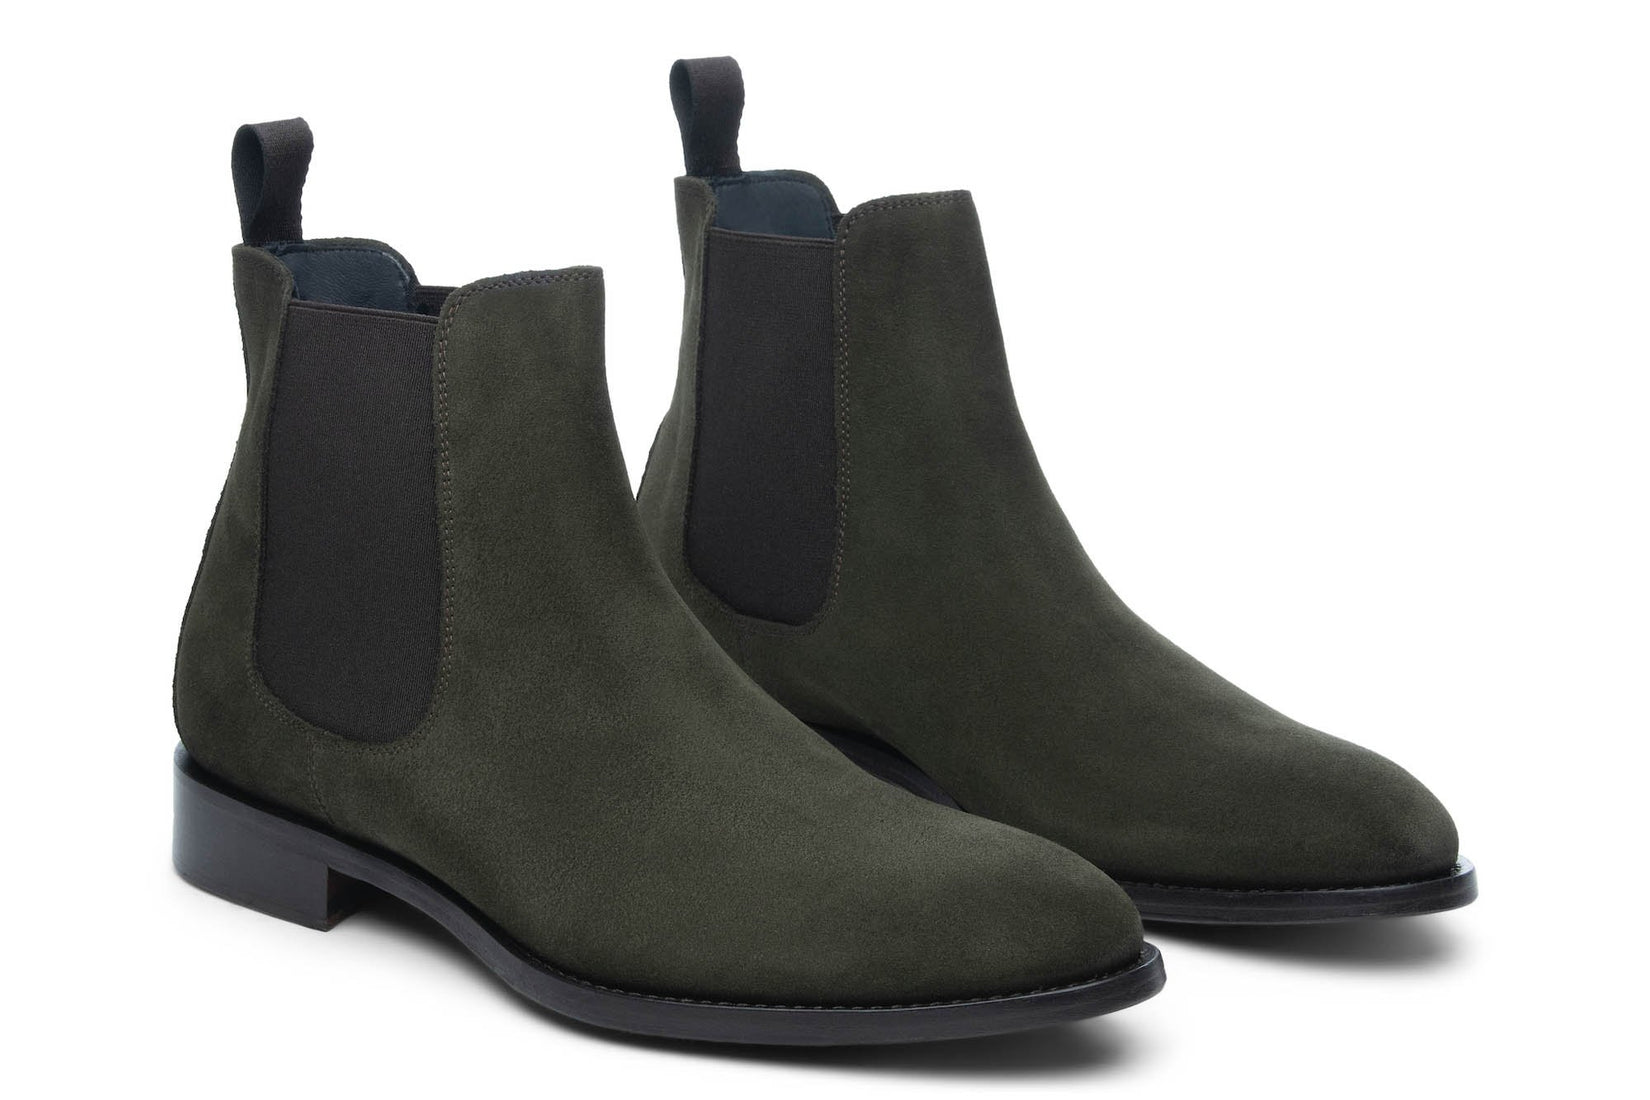 Wednesday Chelsea Boot in Forest (FINAL SALE)